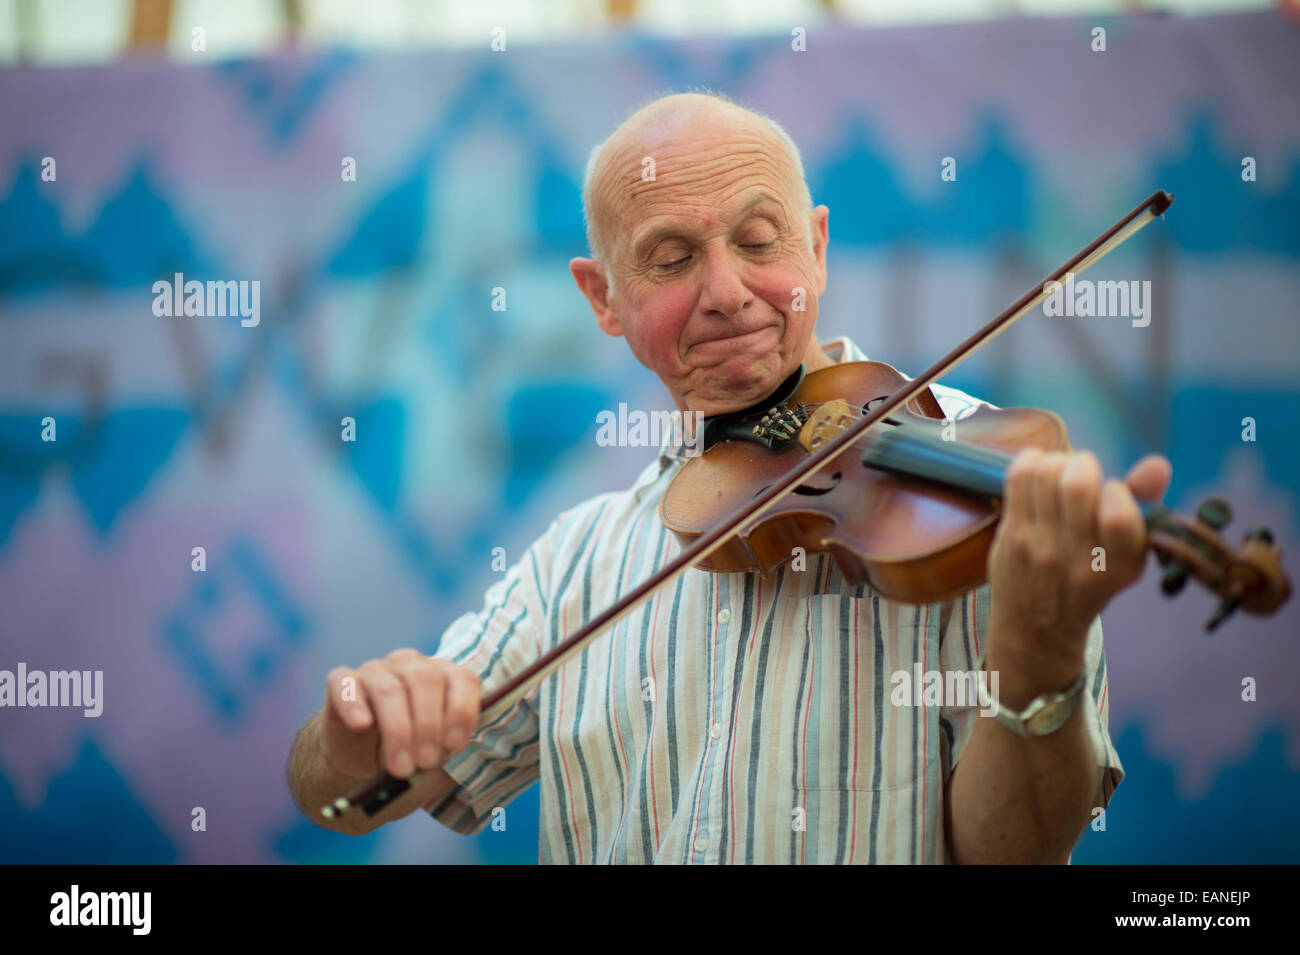 A senior man adult male  playing traditional folk music on the violin at the National Eisteddfod of Wales, Llanelli, - Stock Image